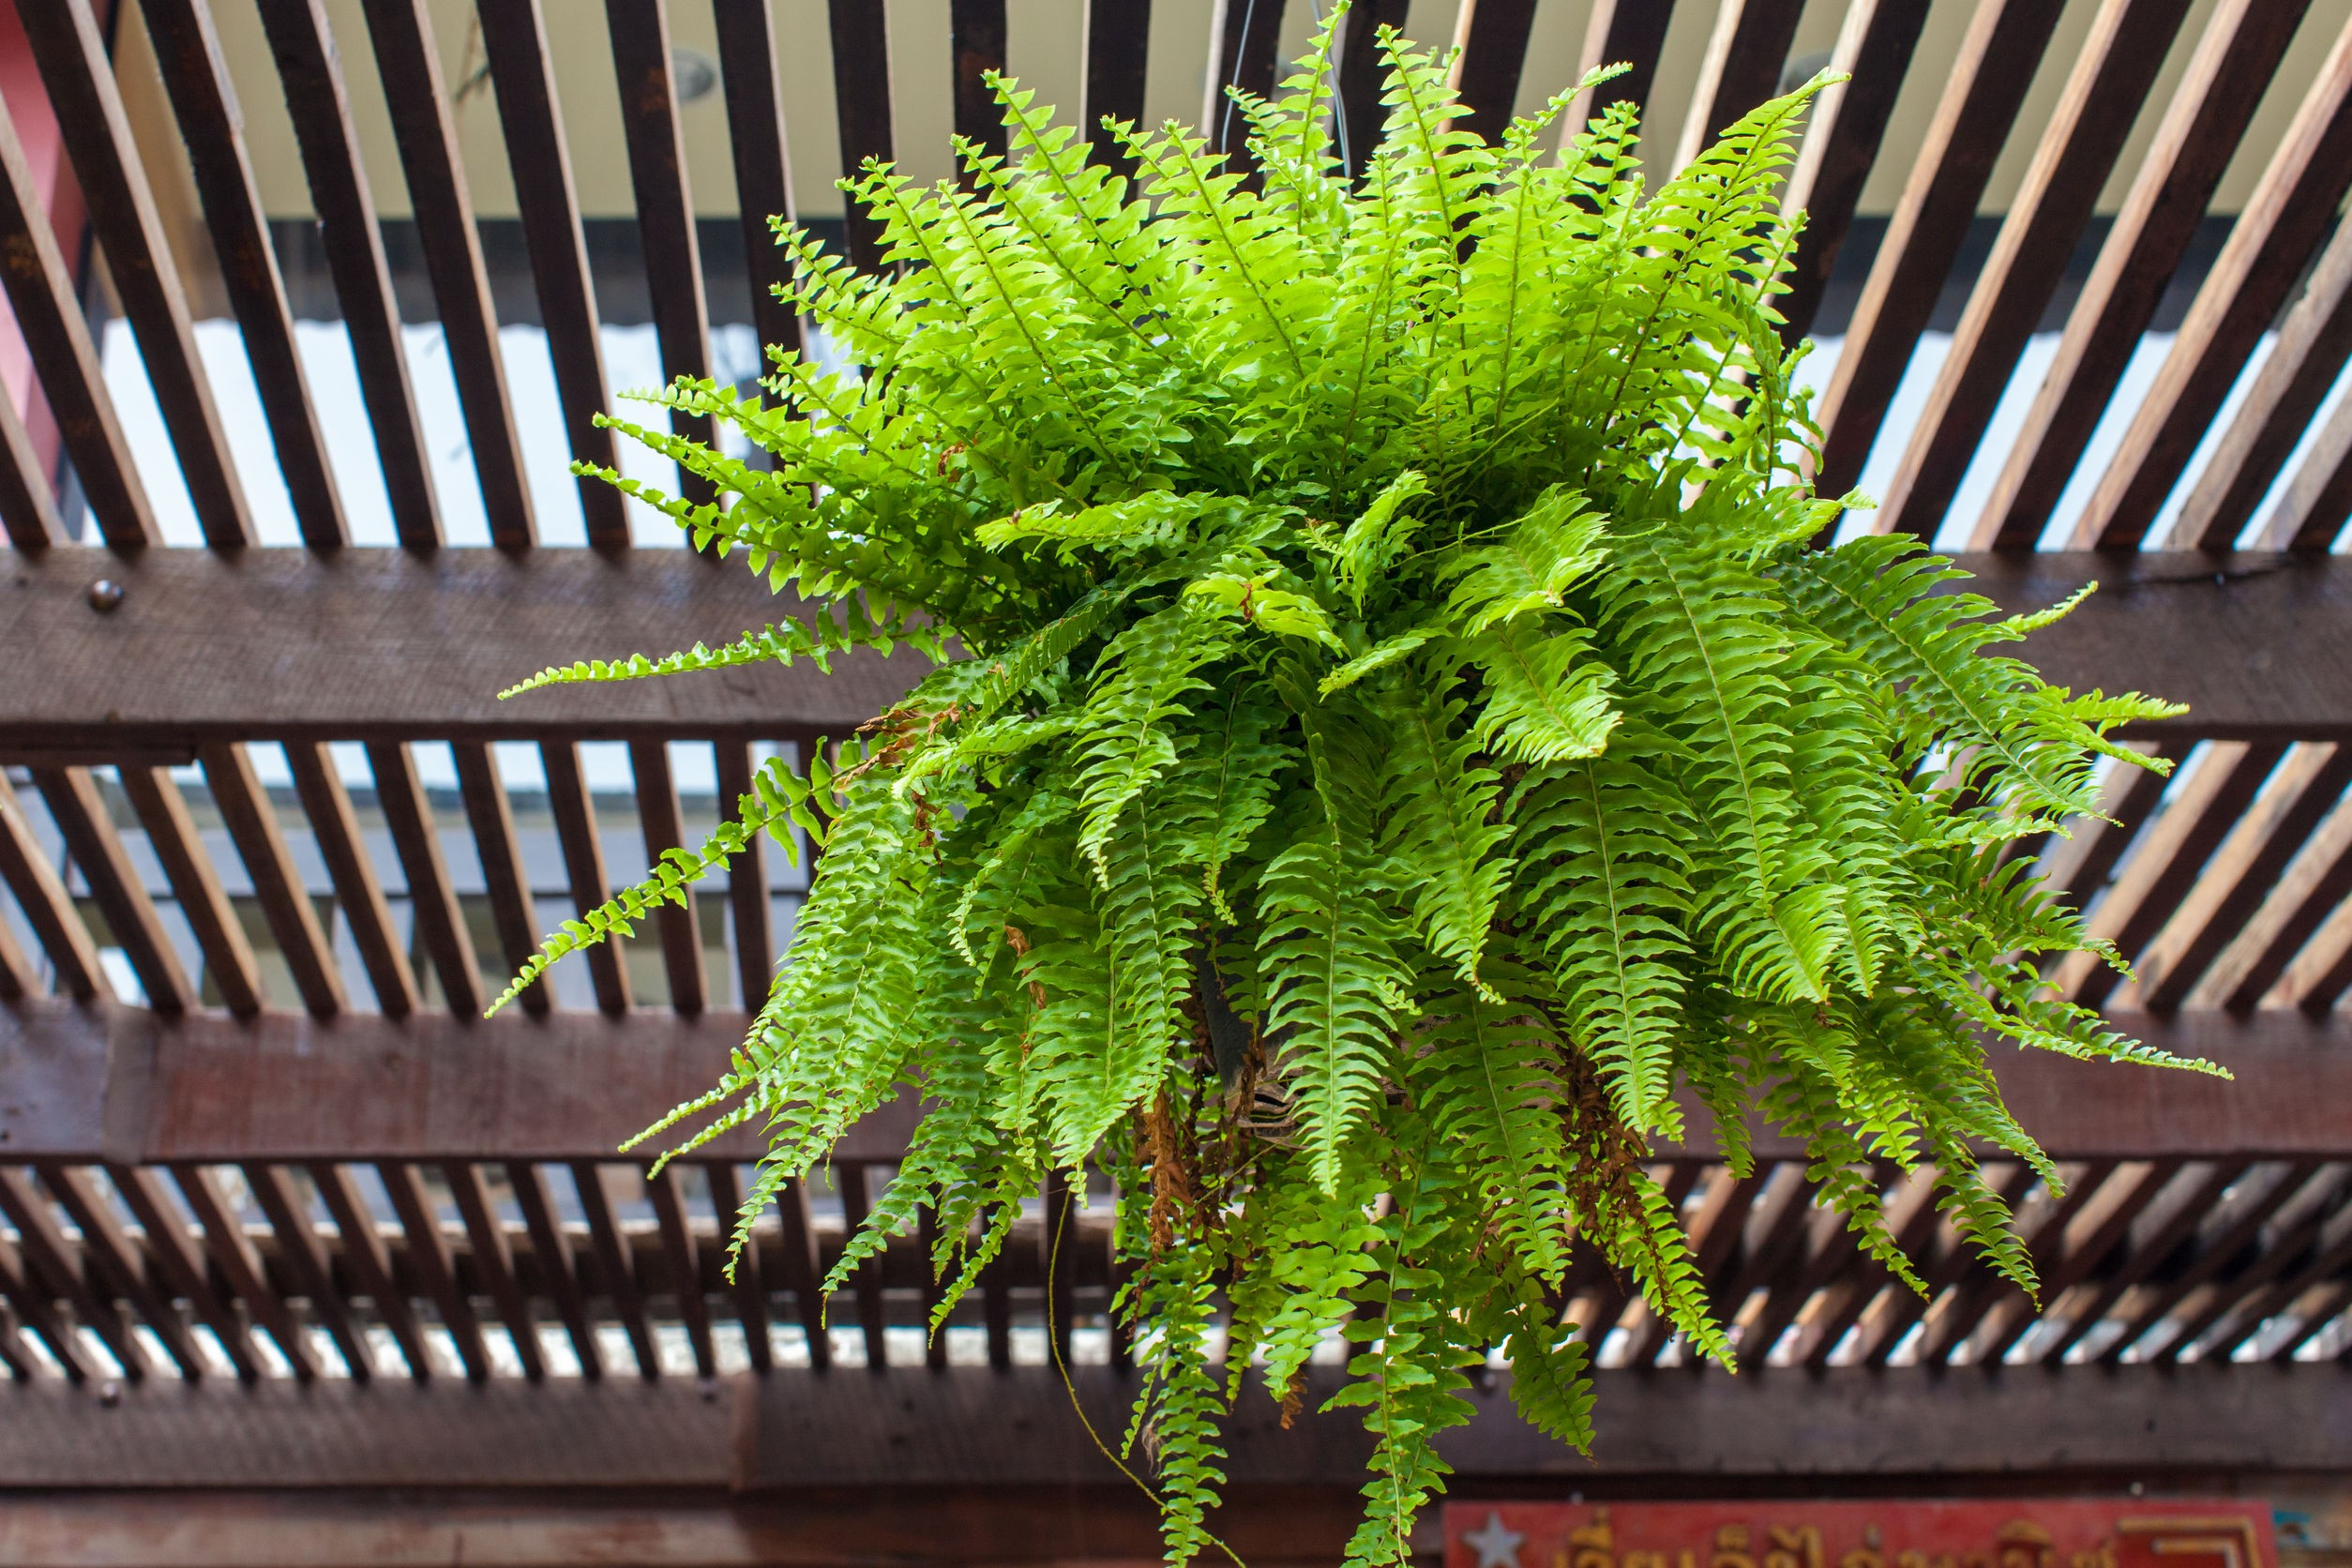 Pet Safe Plants for Dogs and Cats - Boston Fern